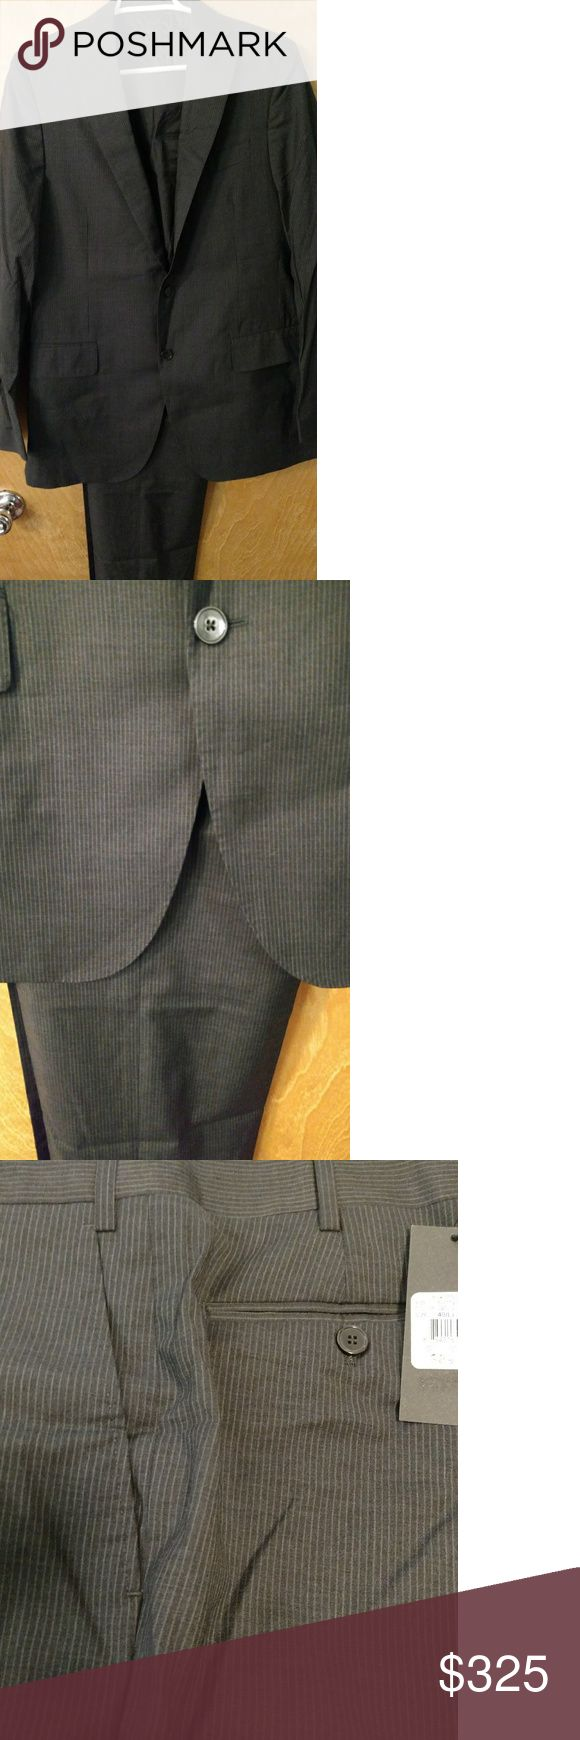 Men's pinstripe suit 40L Gorgeous men's suit from Bloomingdale's. Black pinstripe, unhemmed and never worn. Retail price $895! Bloomingdale's Suits & Blazers Suits